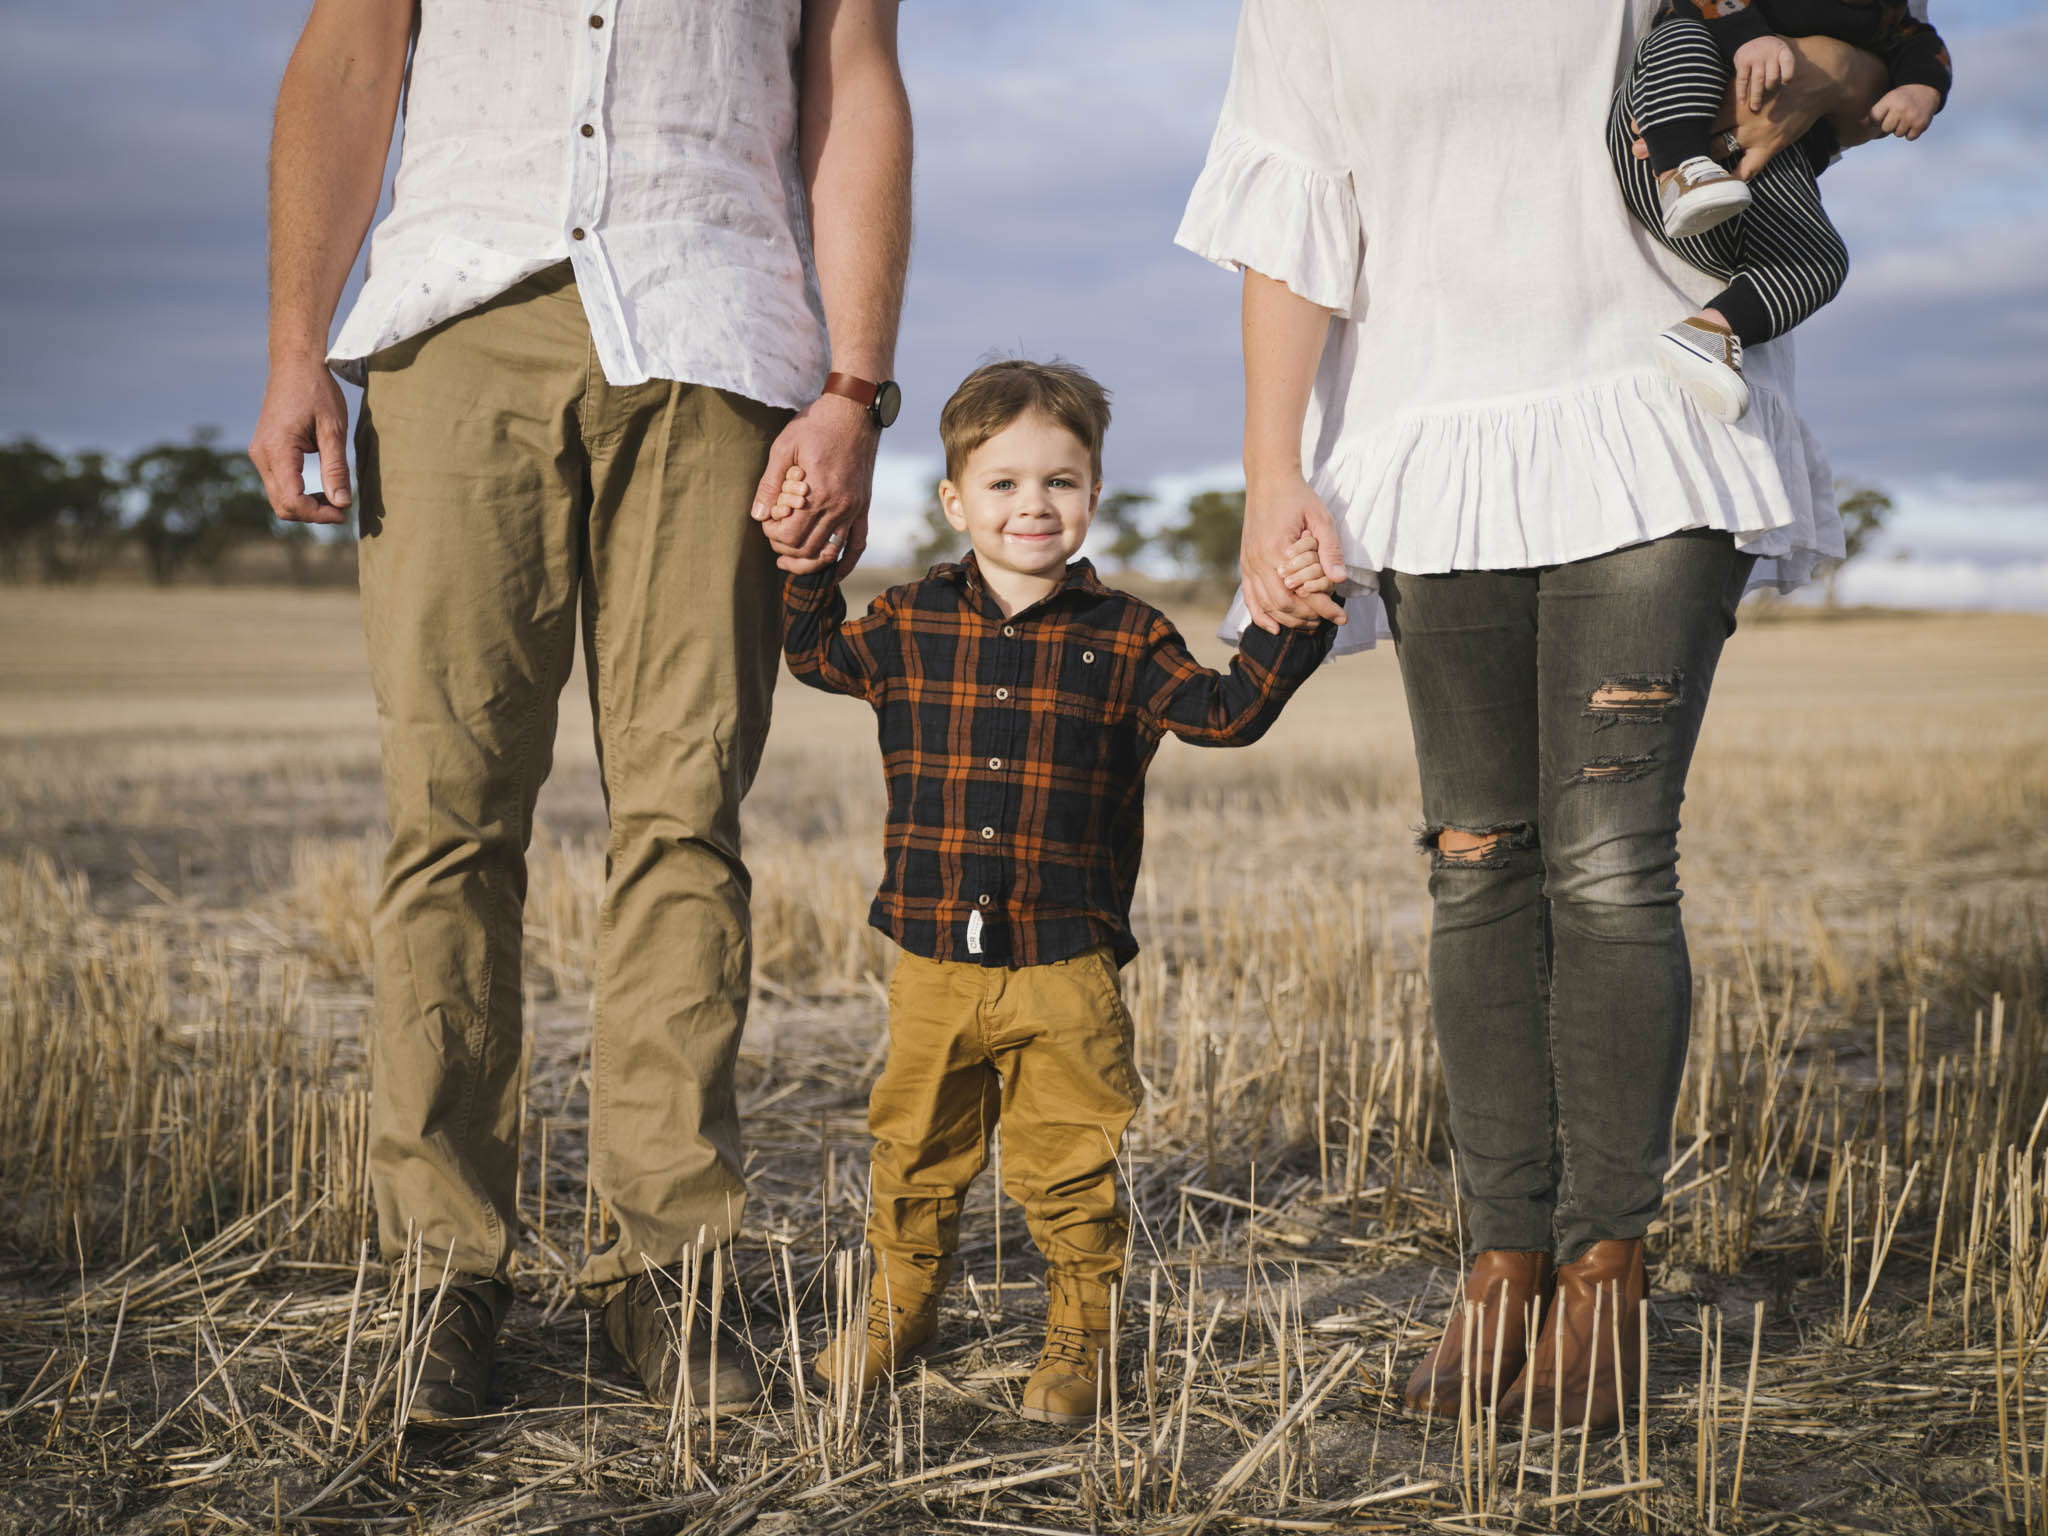 Rural farming family lifestyle photography session on farm in the country Wheatbelt of WA